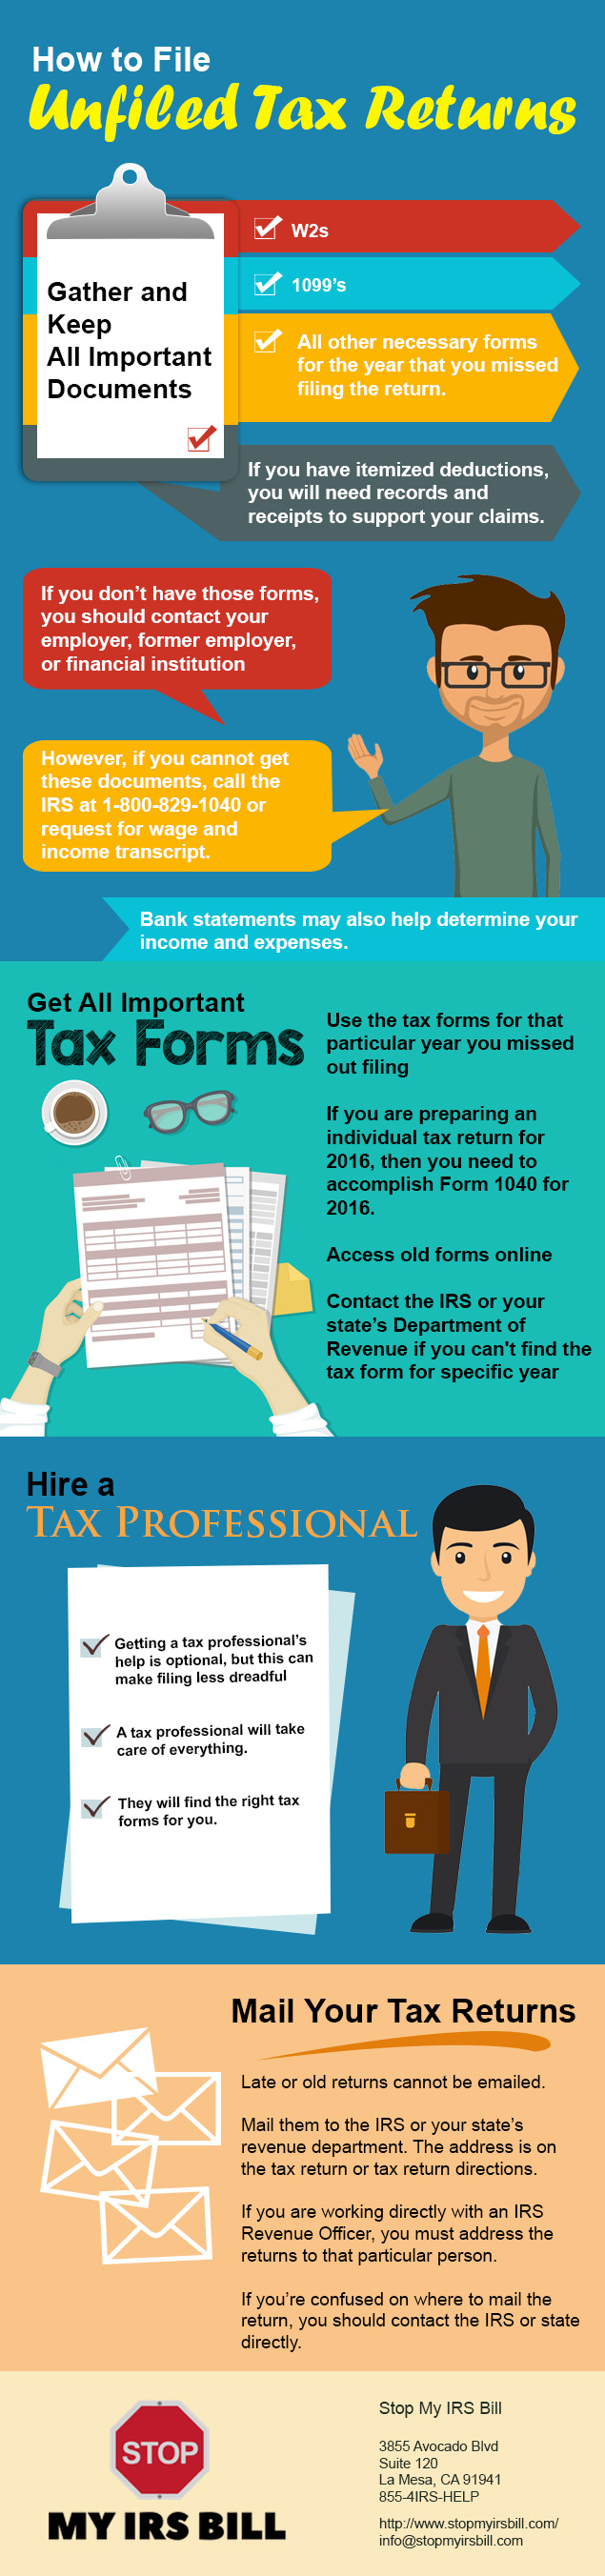 how to file unfiled tax returns